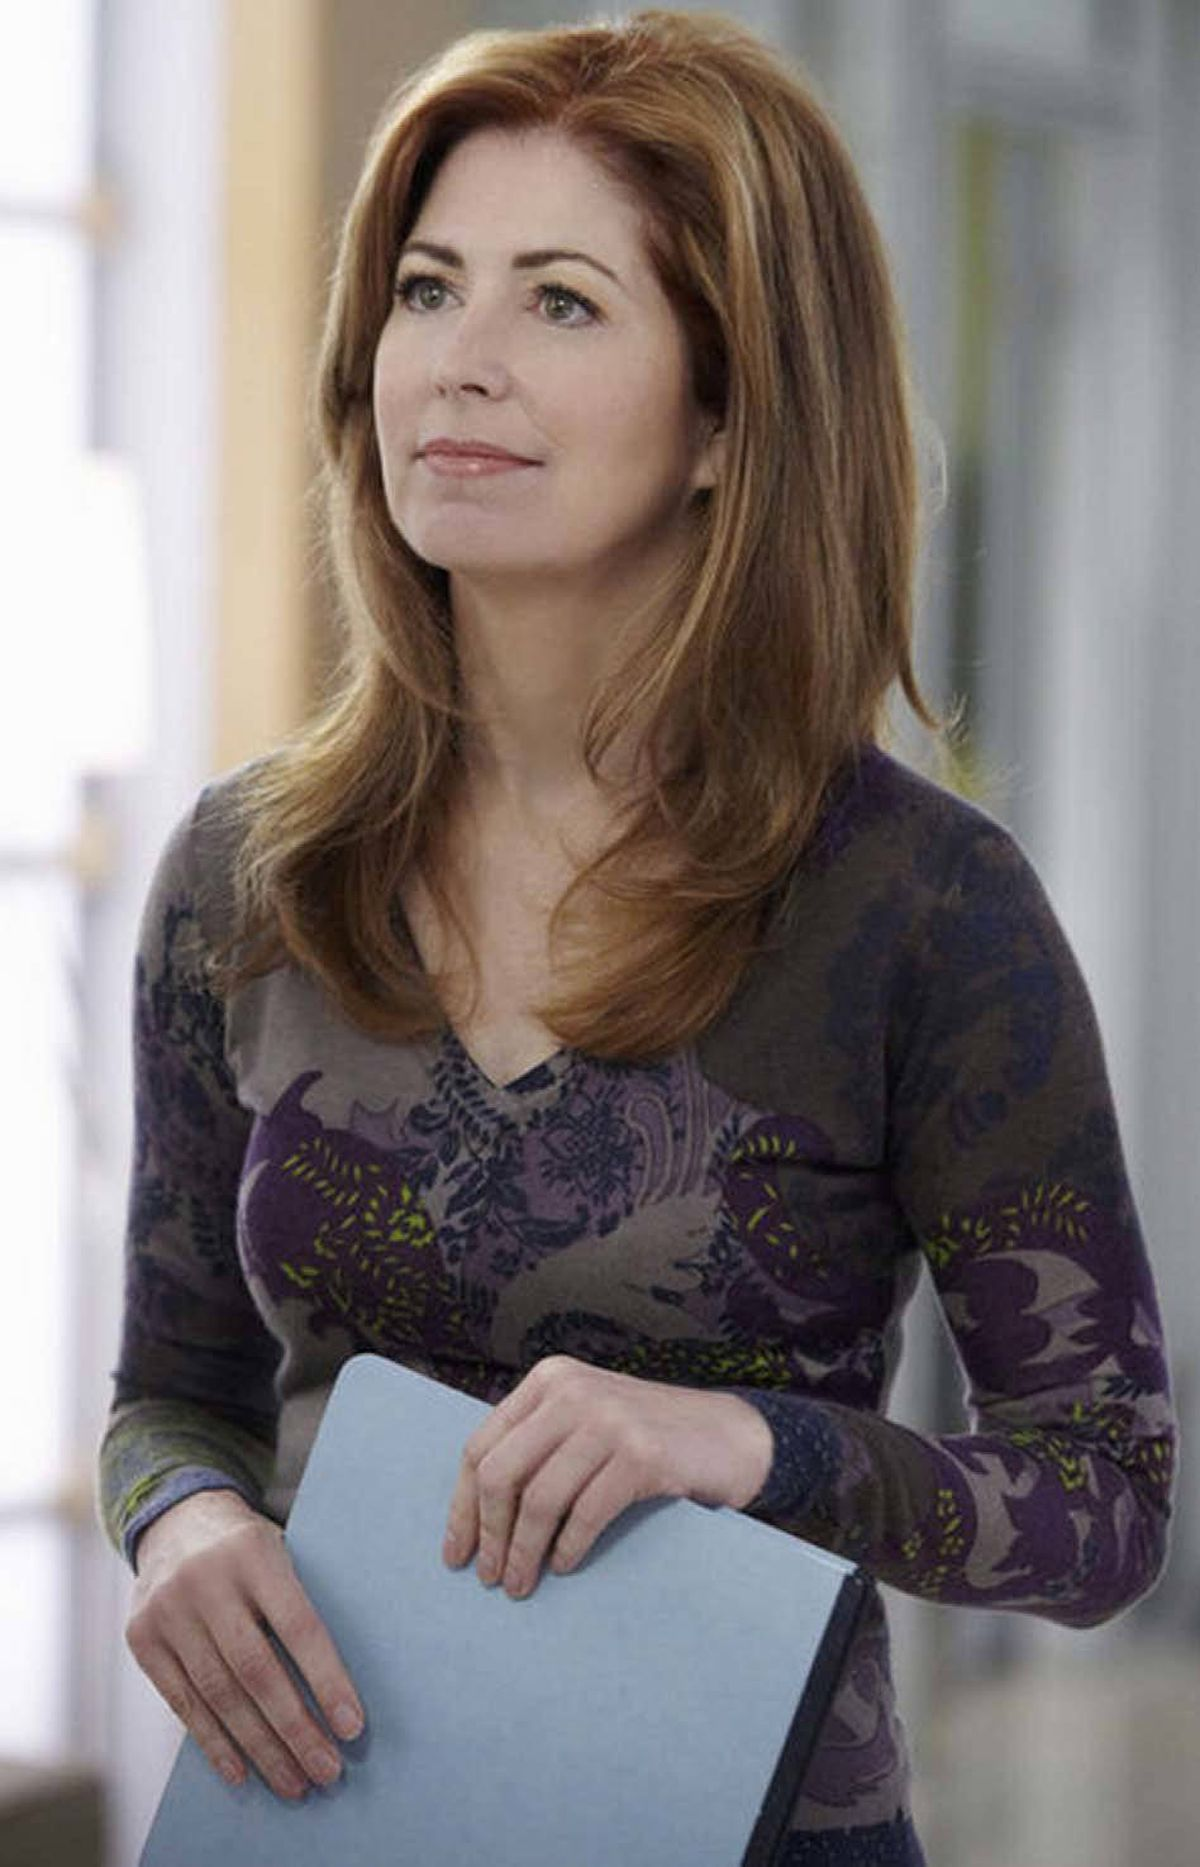 DRAMA Body of Proof ABC, CITY-TV, 10 p.m. ET/PT As per every successful medical drama from Ben Casey to House, this show's popularity stems entirely from the performance of Dana Delany as a temperamental medical genius. The former star of China Beach and Desperate Housewives is a commanding presence as the neurosurgeon Megan Hunt, whose surgical prowess was cut short by an auto accident, after which she begins a new career as a medical examiner. In tonight's new episode, Dr. Hunt is called in to investigate a tragic car accident that has left one young girl dead and the other in critical condition. Some quick sleuthing reveals that not only was the wrong child pronounced dead, but the incident itself may not have been accidental.